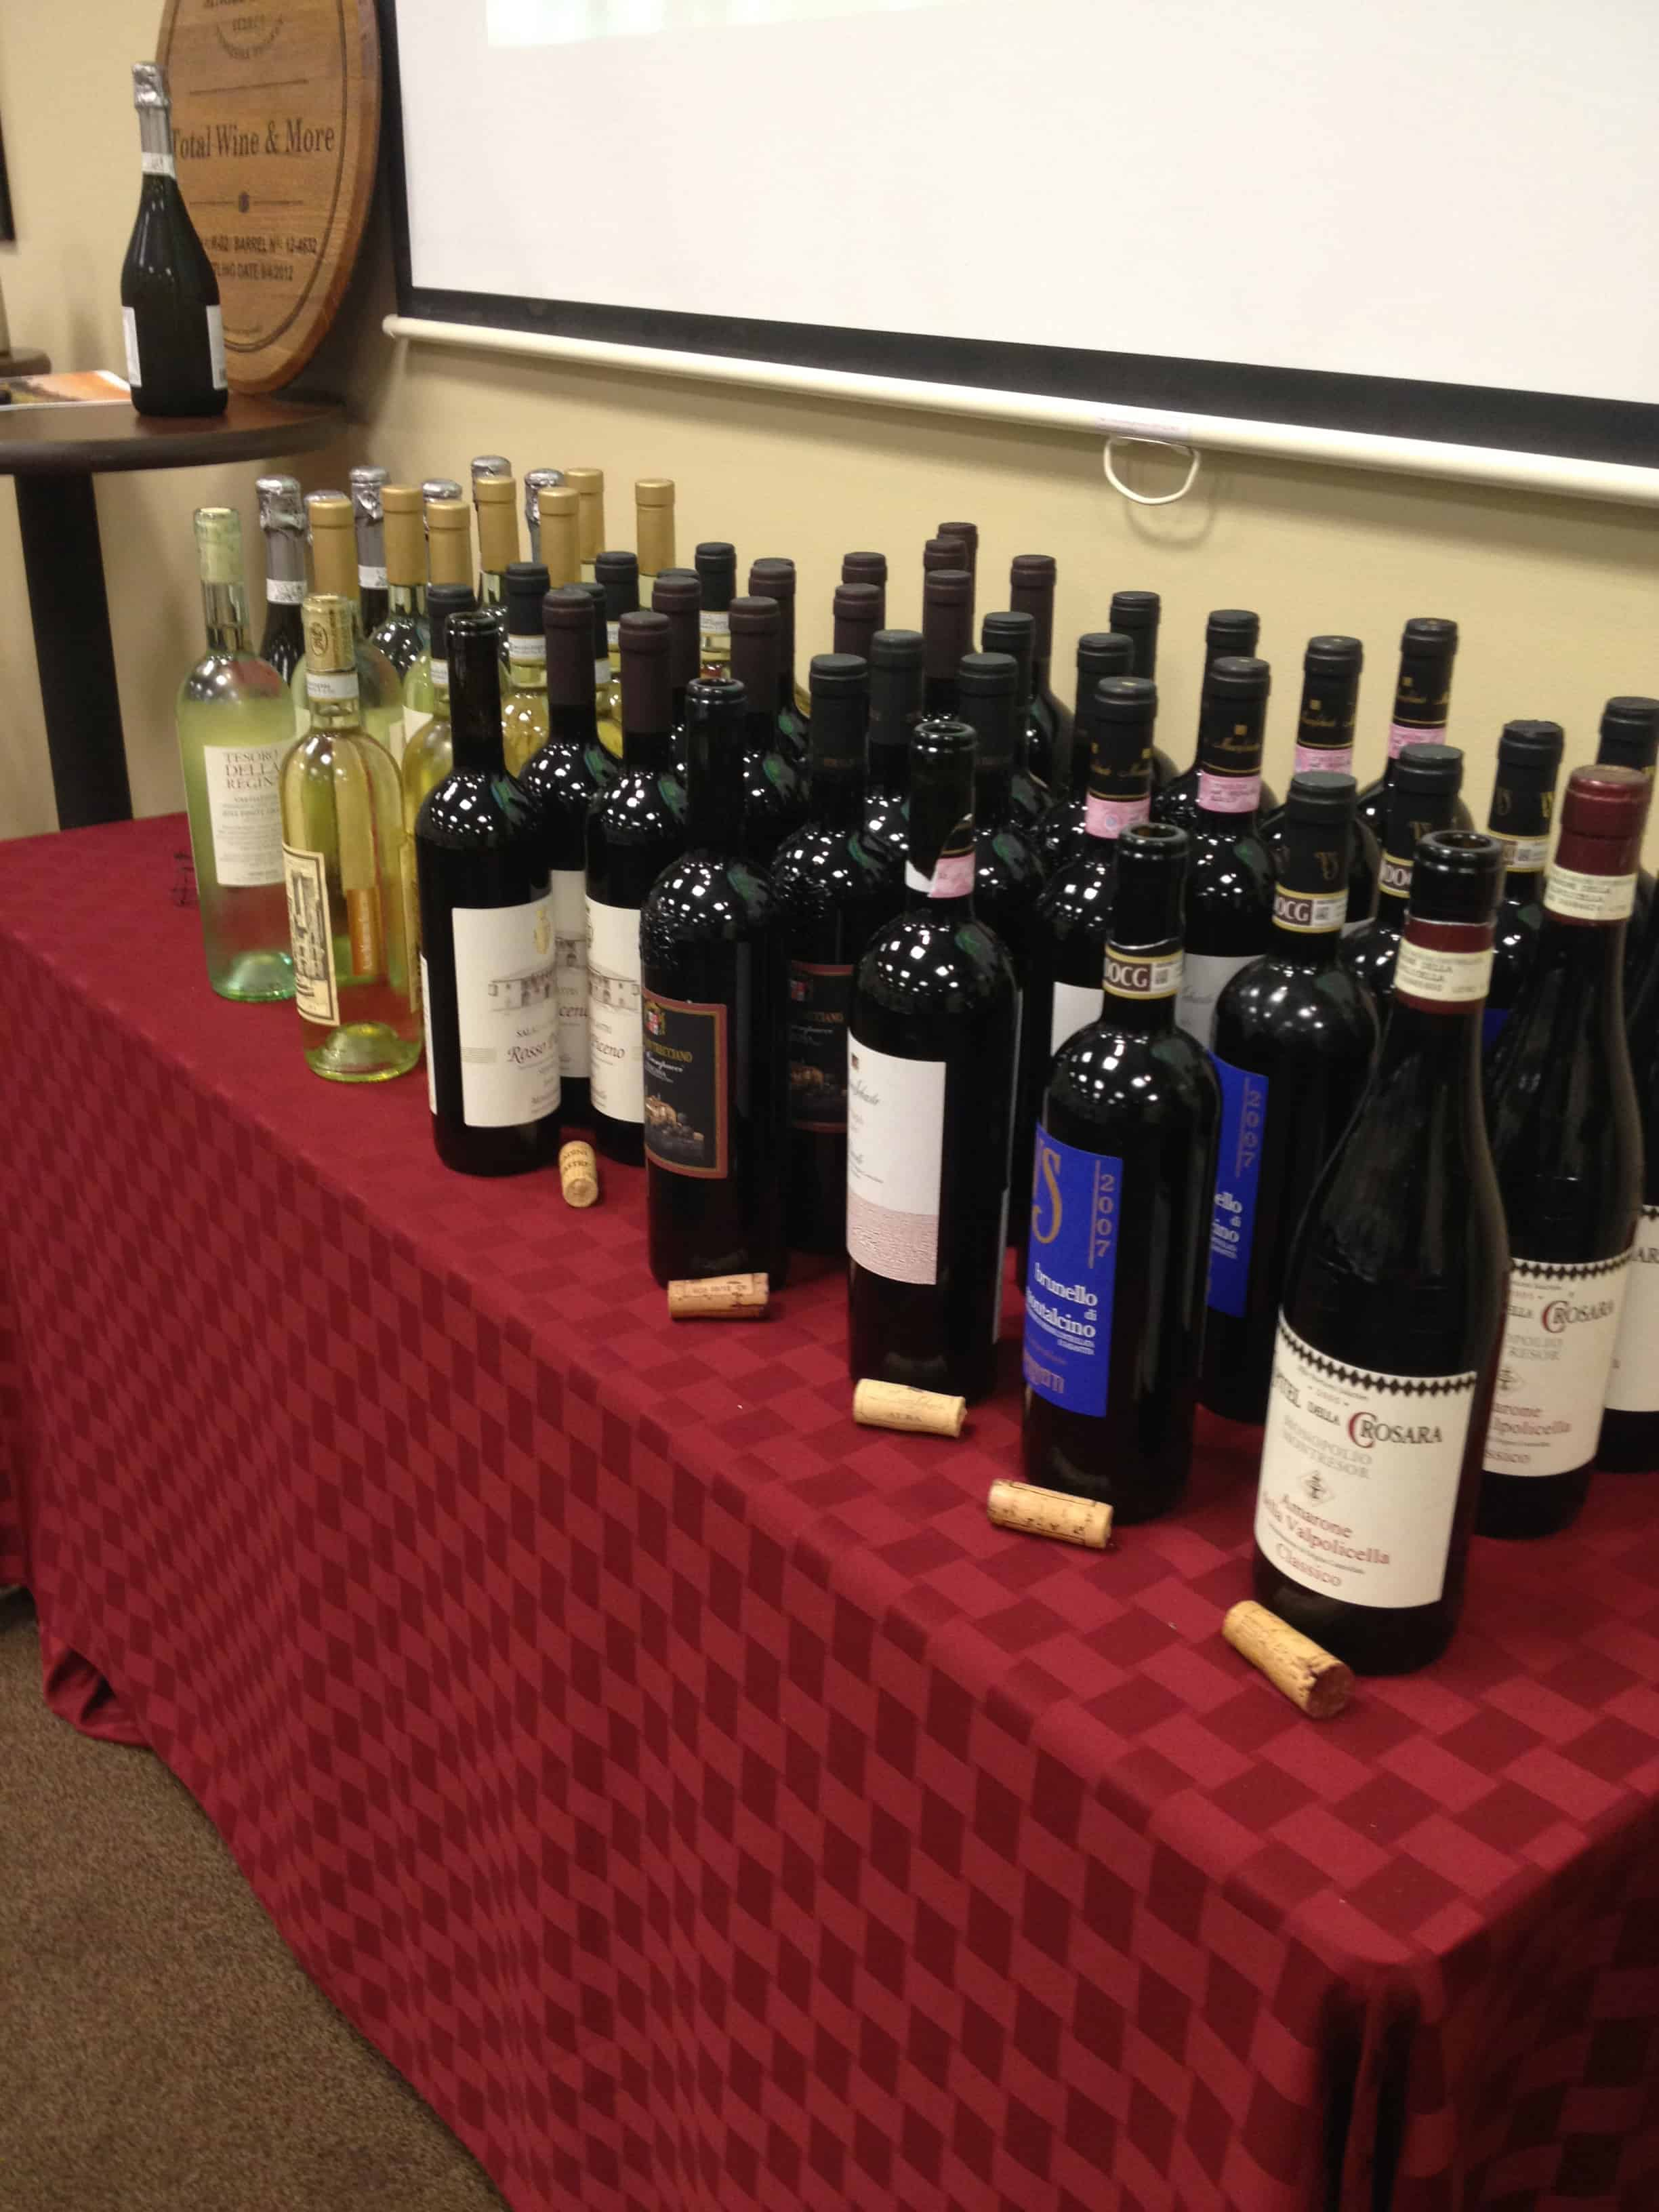 A Tour of Italy Wine Class at Total Wine